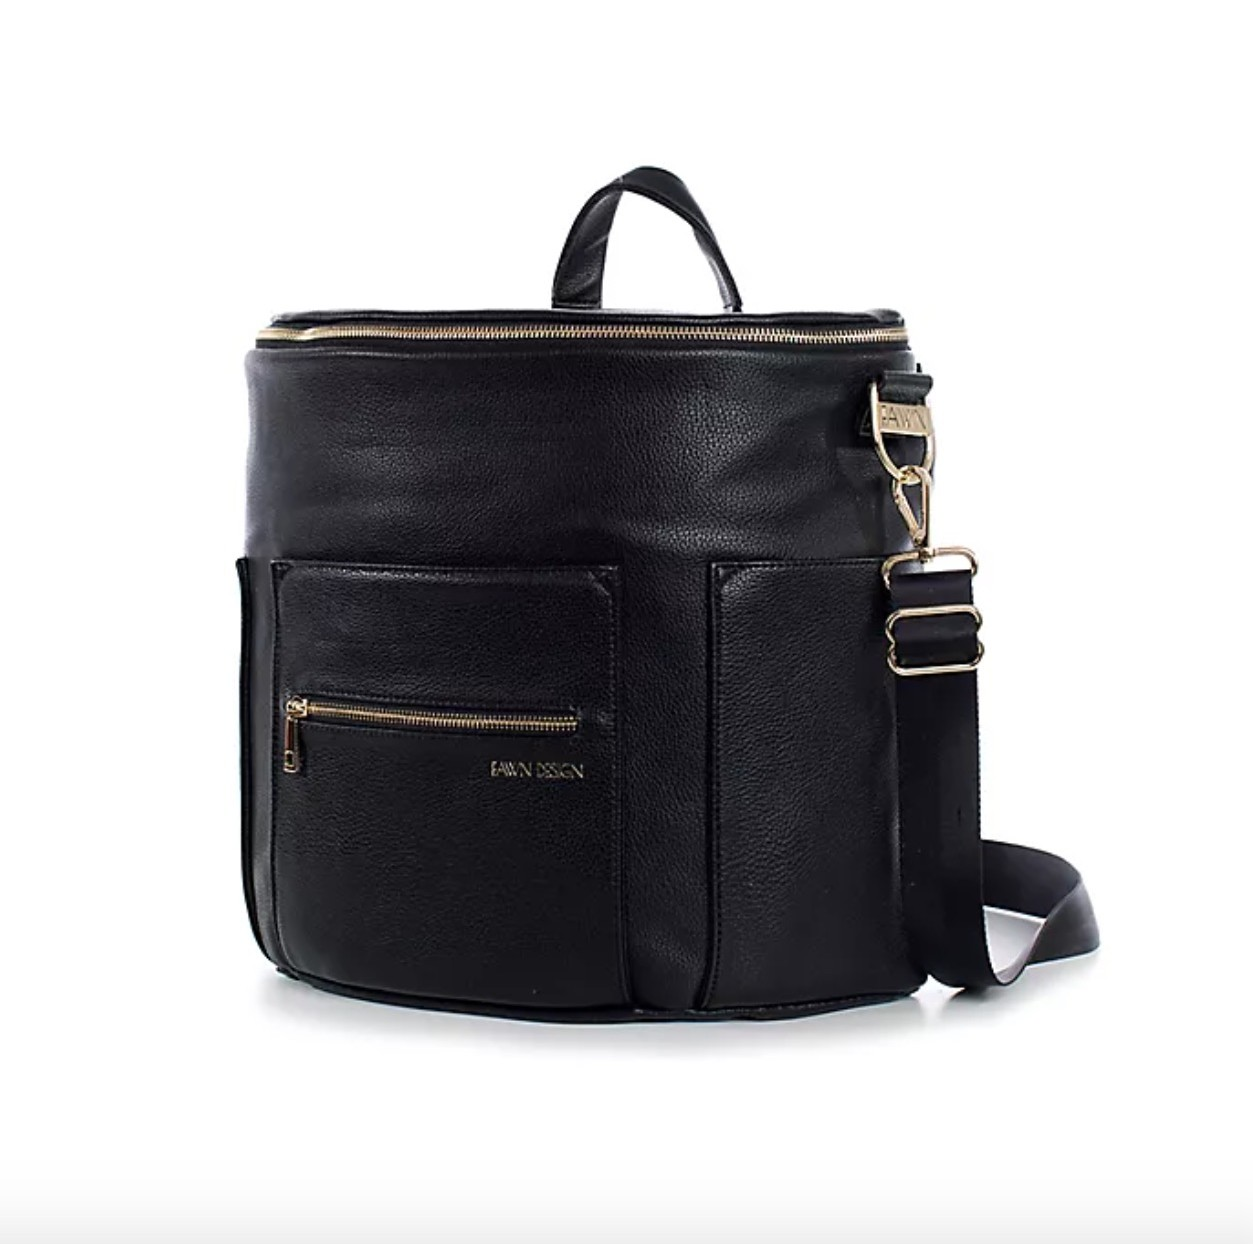 A Black leather diaper bag on a white background